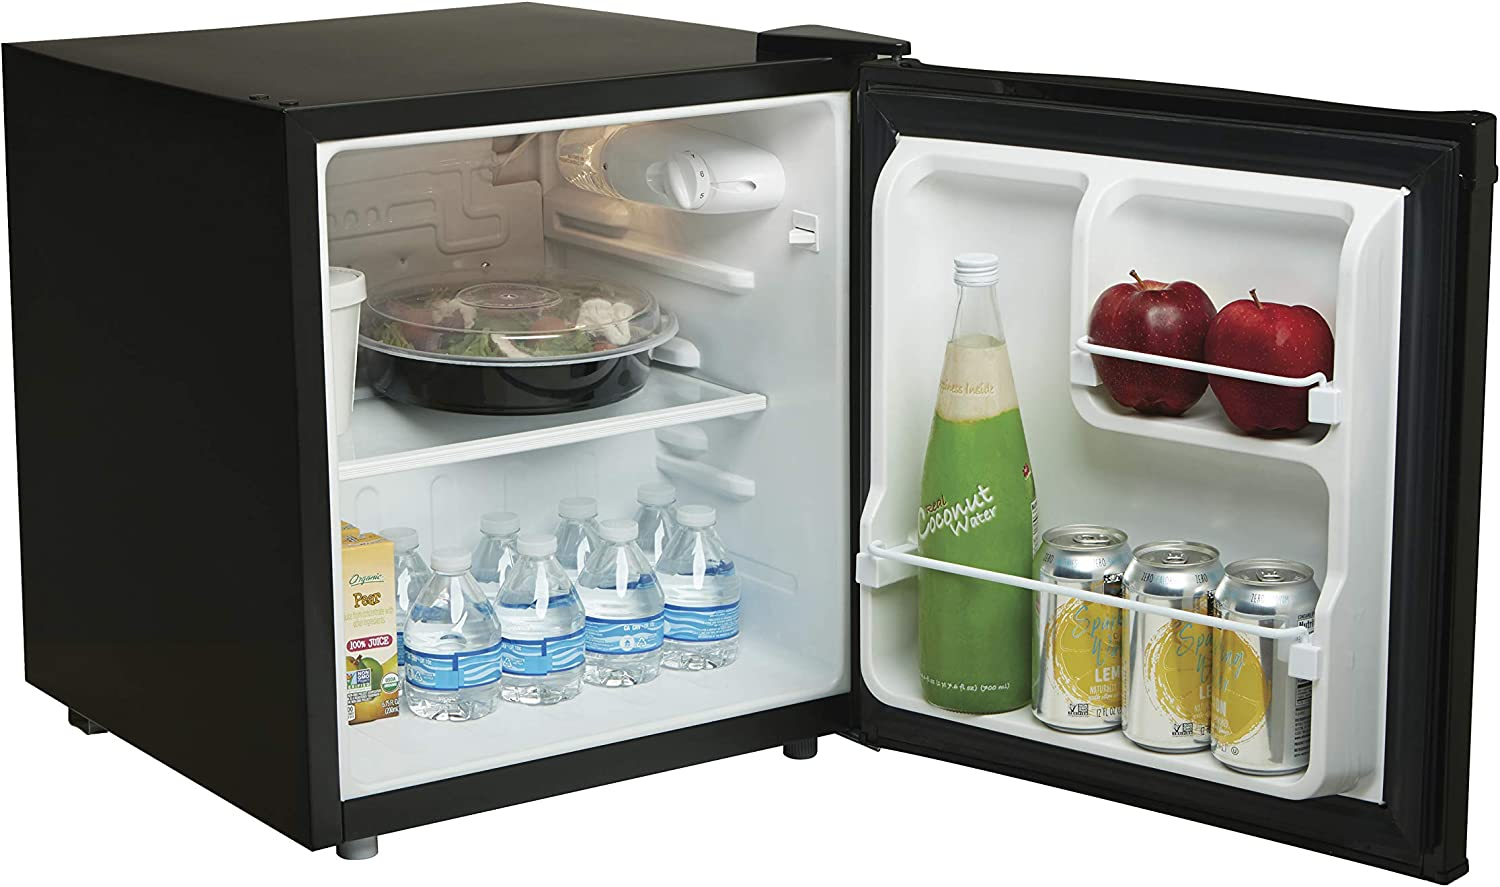 Proctor Silex 1.7 Cu Ft Compact Refrigerator, Single Door Mini Fridge for Dorm, Office, Bedroom, Black (86103A)